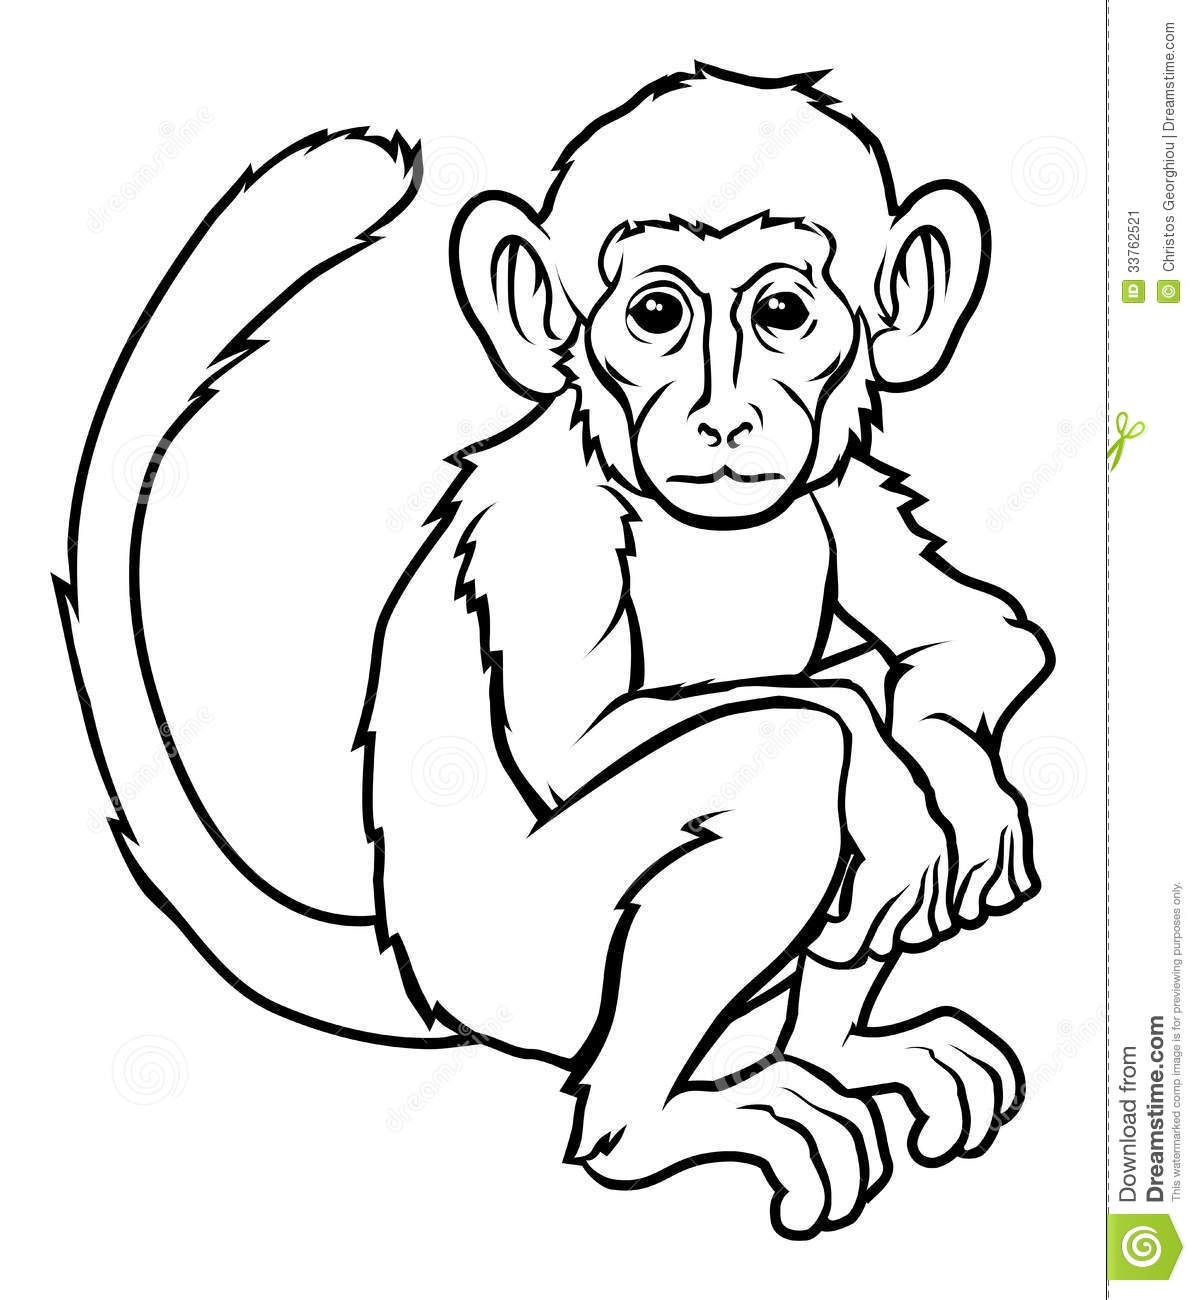 An Illustration Of A Stylised Monkey Perhaps Tattoo